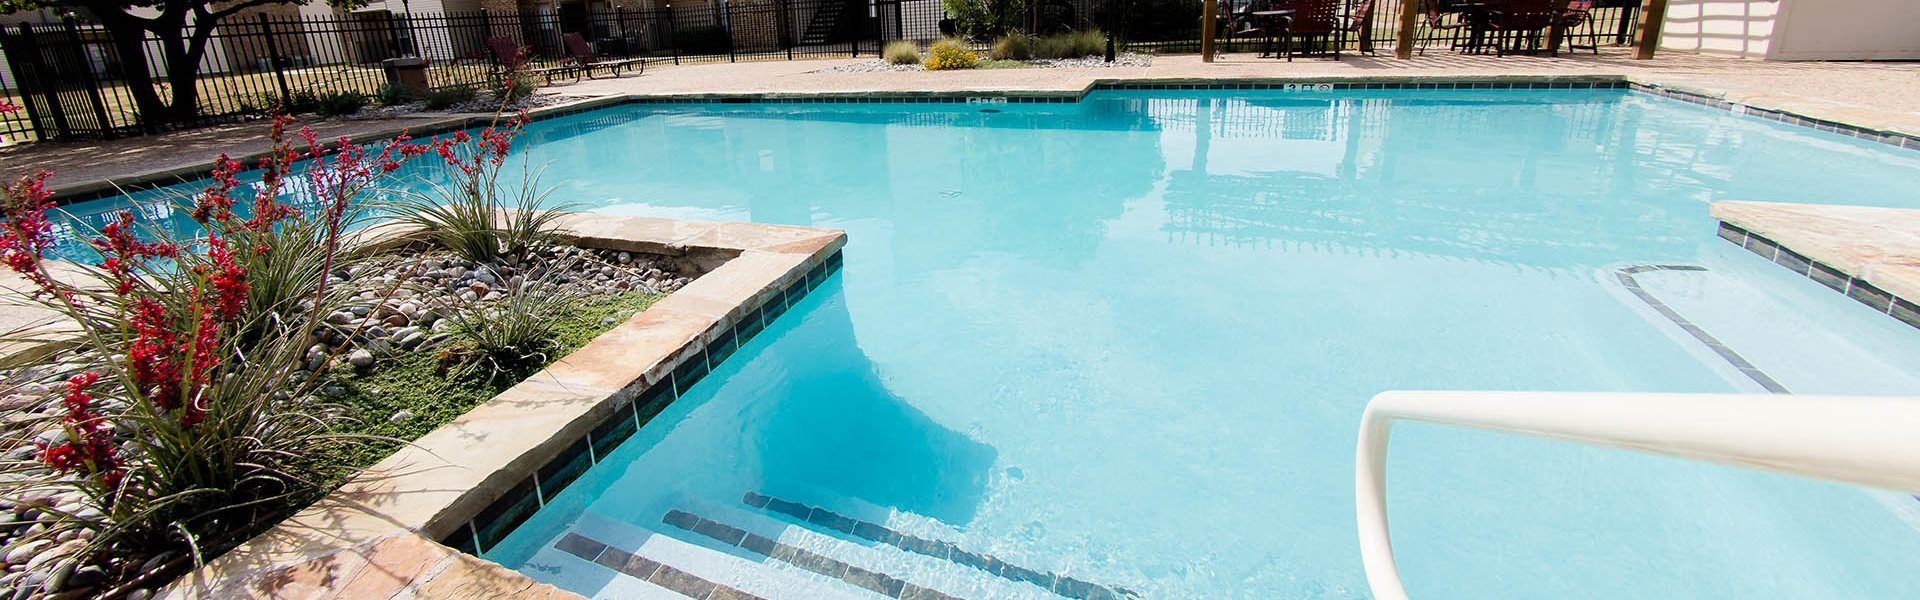 Outside Swimming Pool at Park at Caldera, Midland, TX